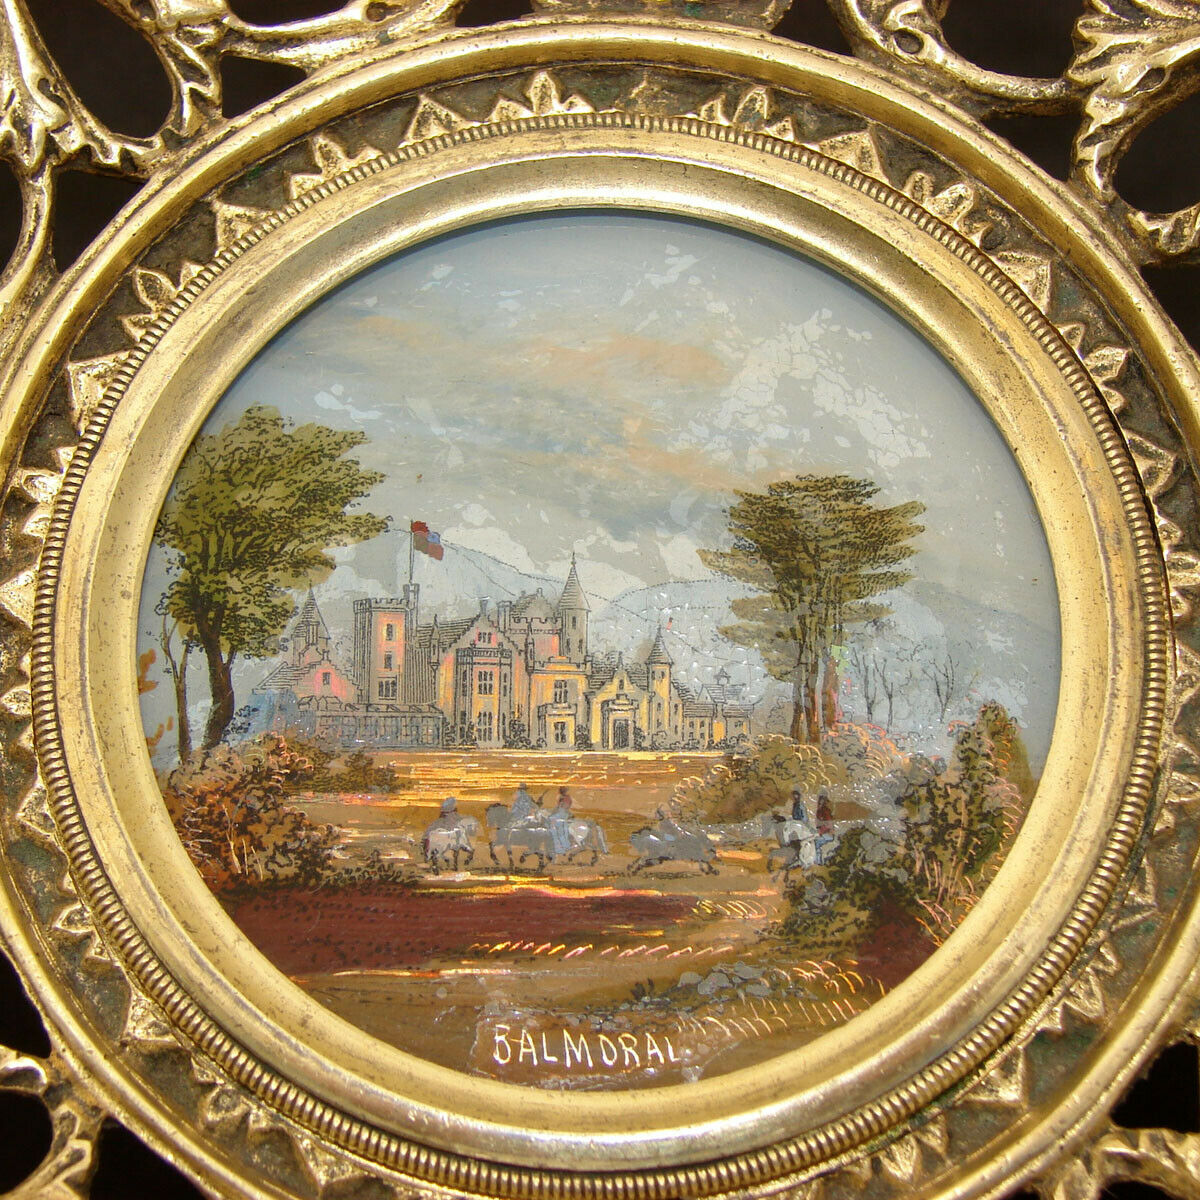 Antique Grand Tour Souvenir Card or Cake Tray: Eglomise Balmoral Castle Painting